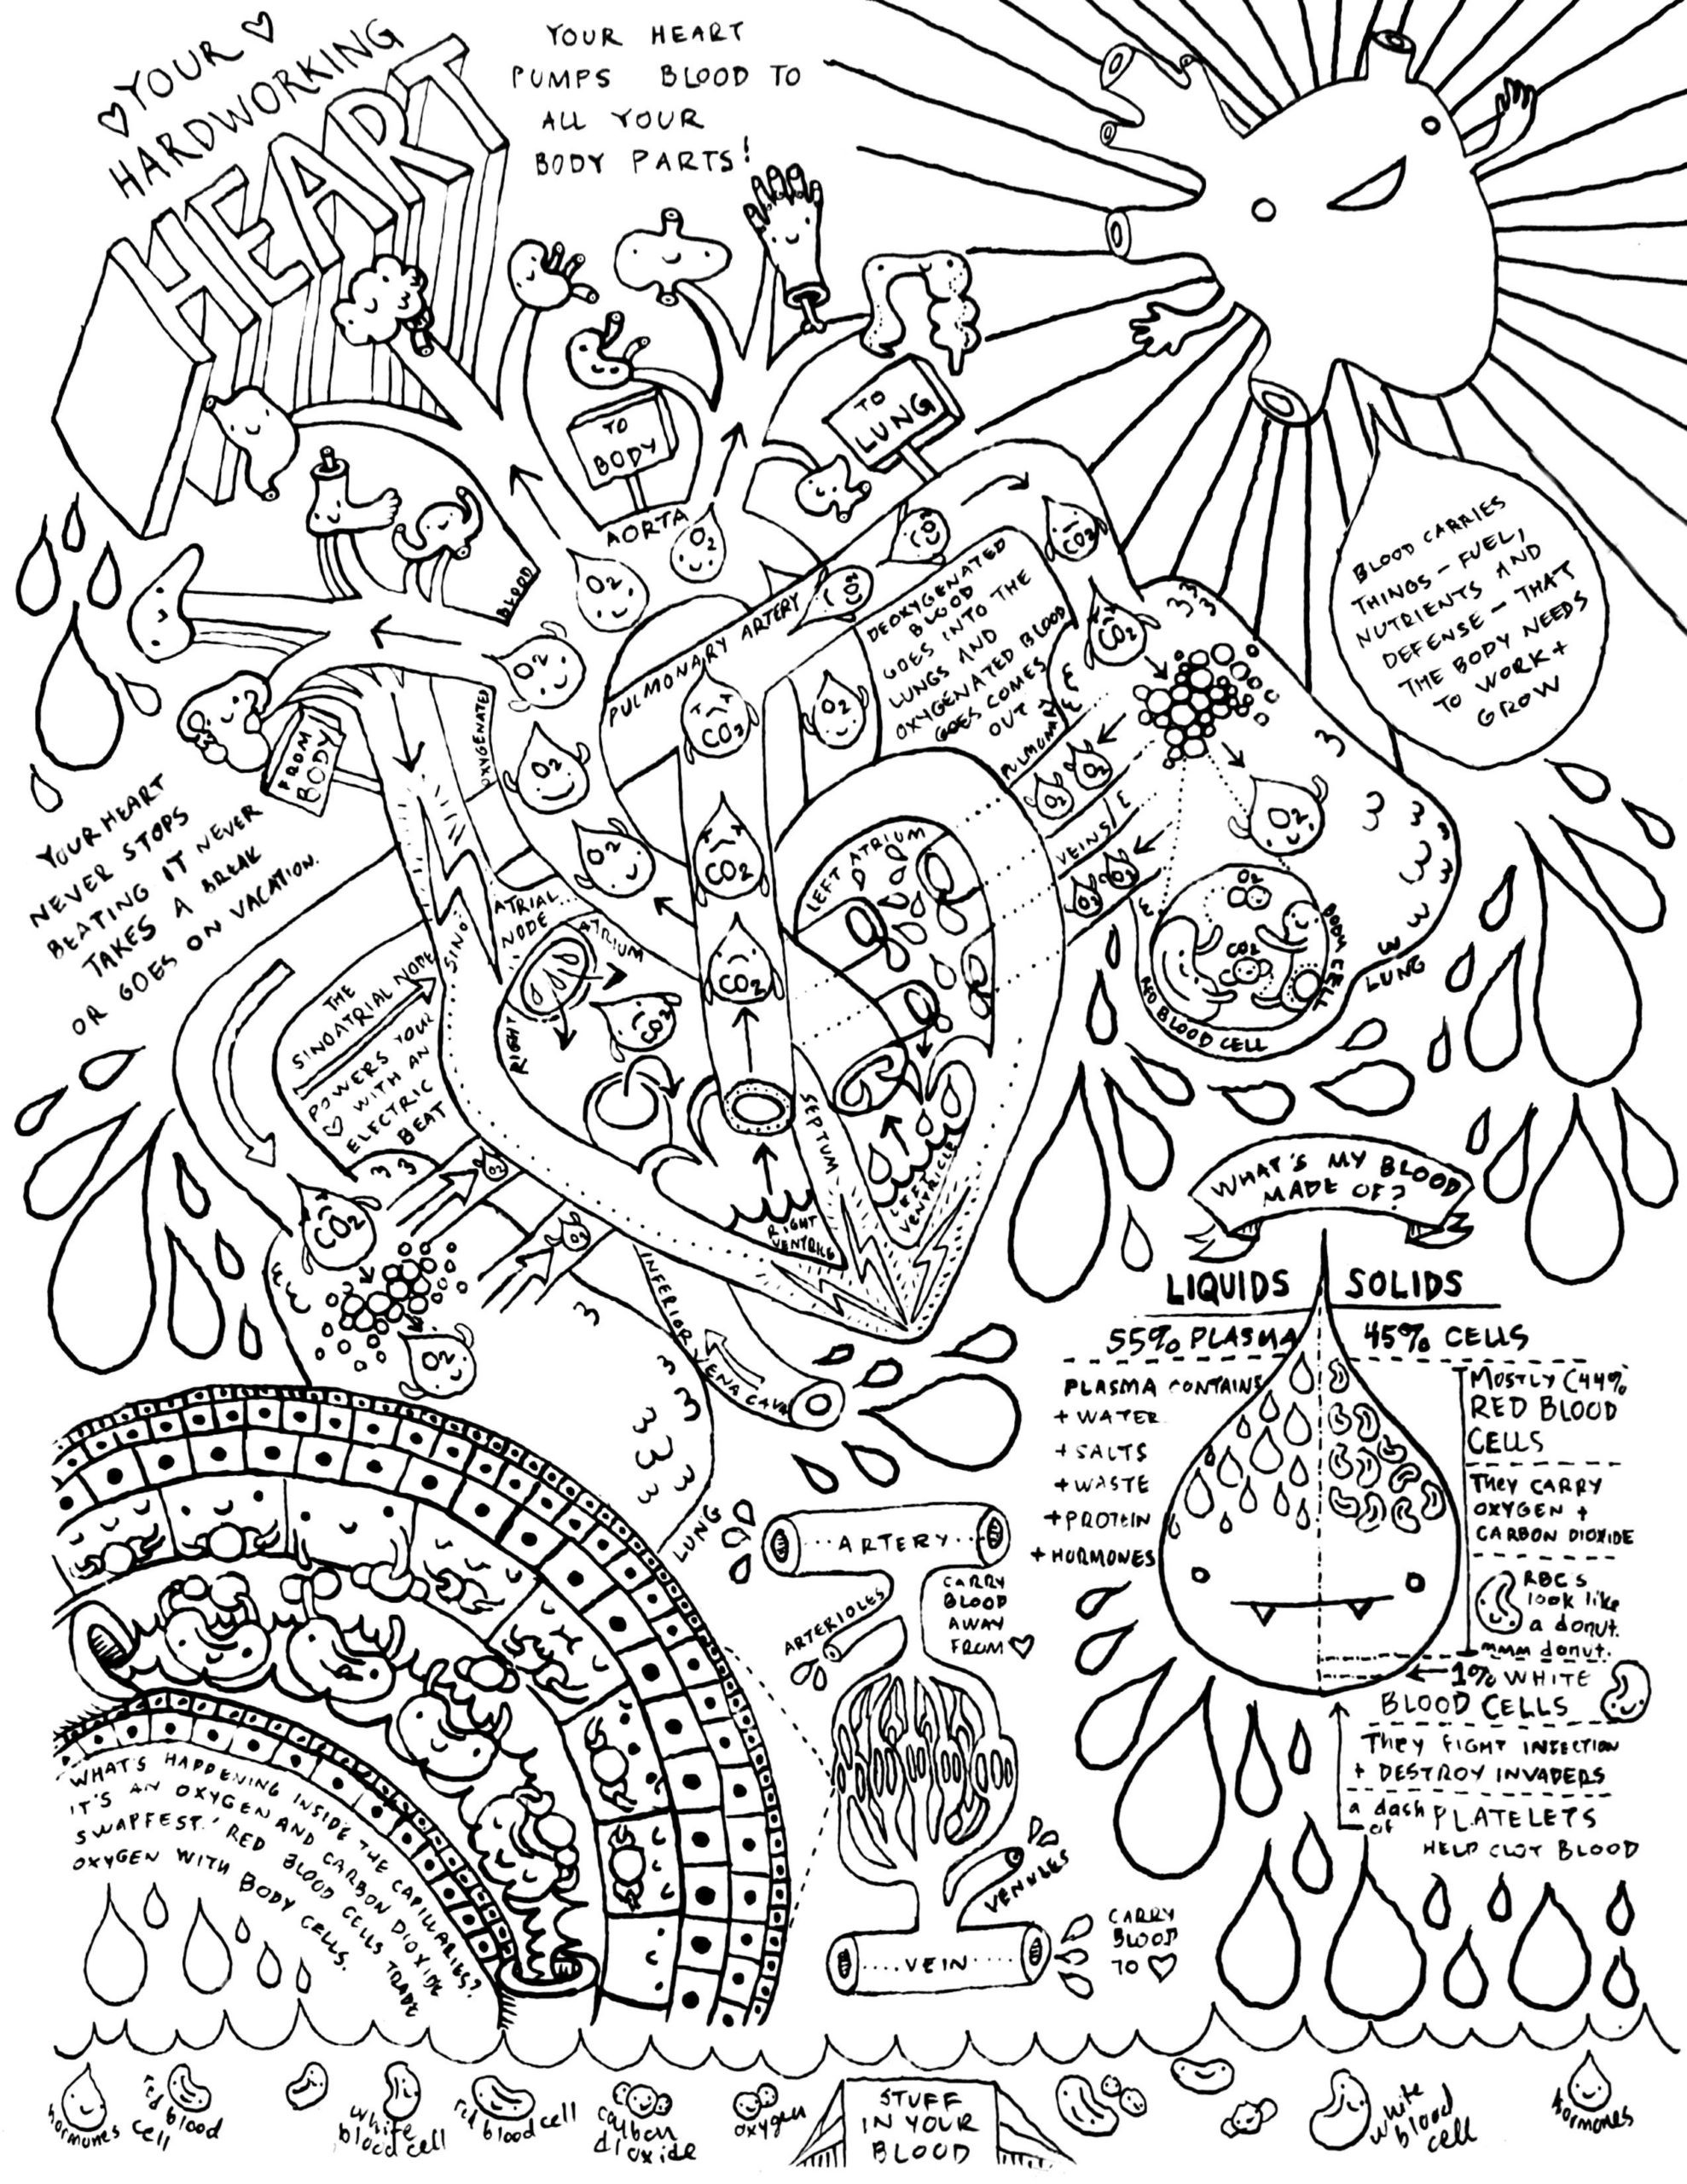 7th Grade Life Science Worksheets Heart and Circulatory System Coloring Anatomy Book Life